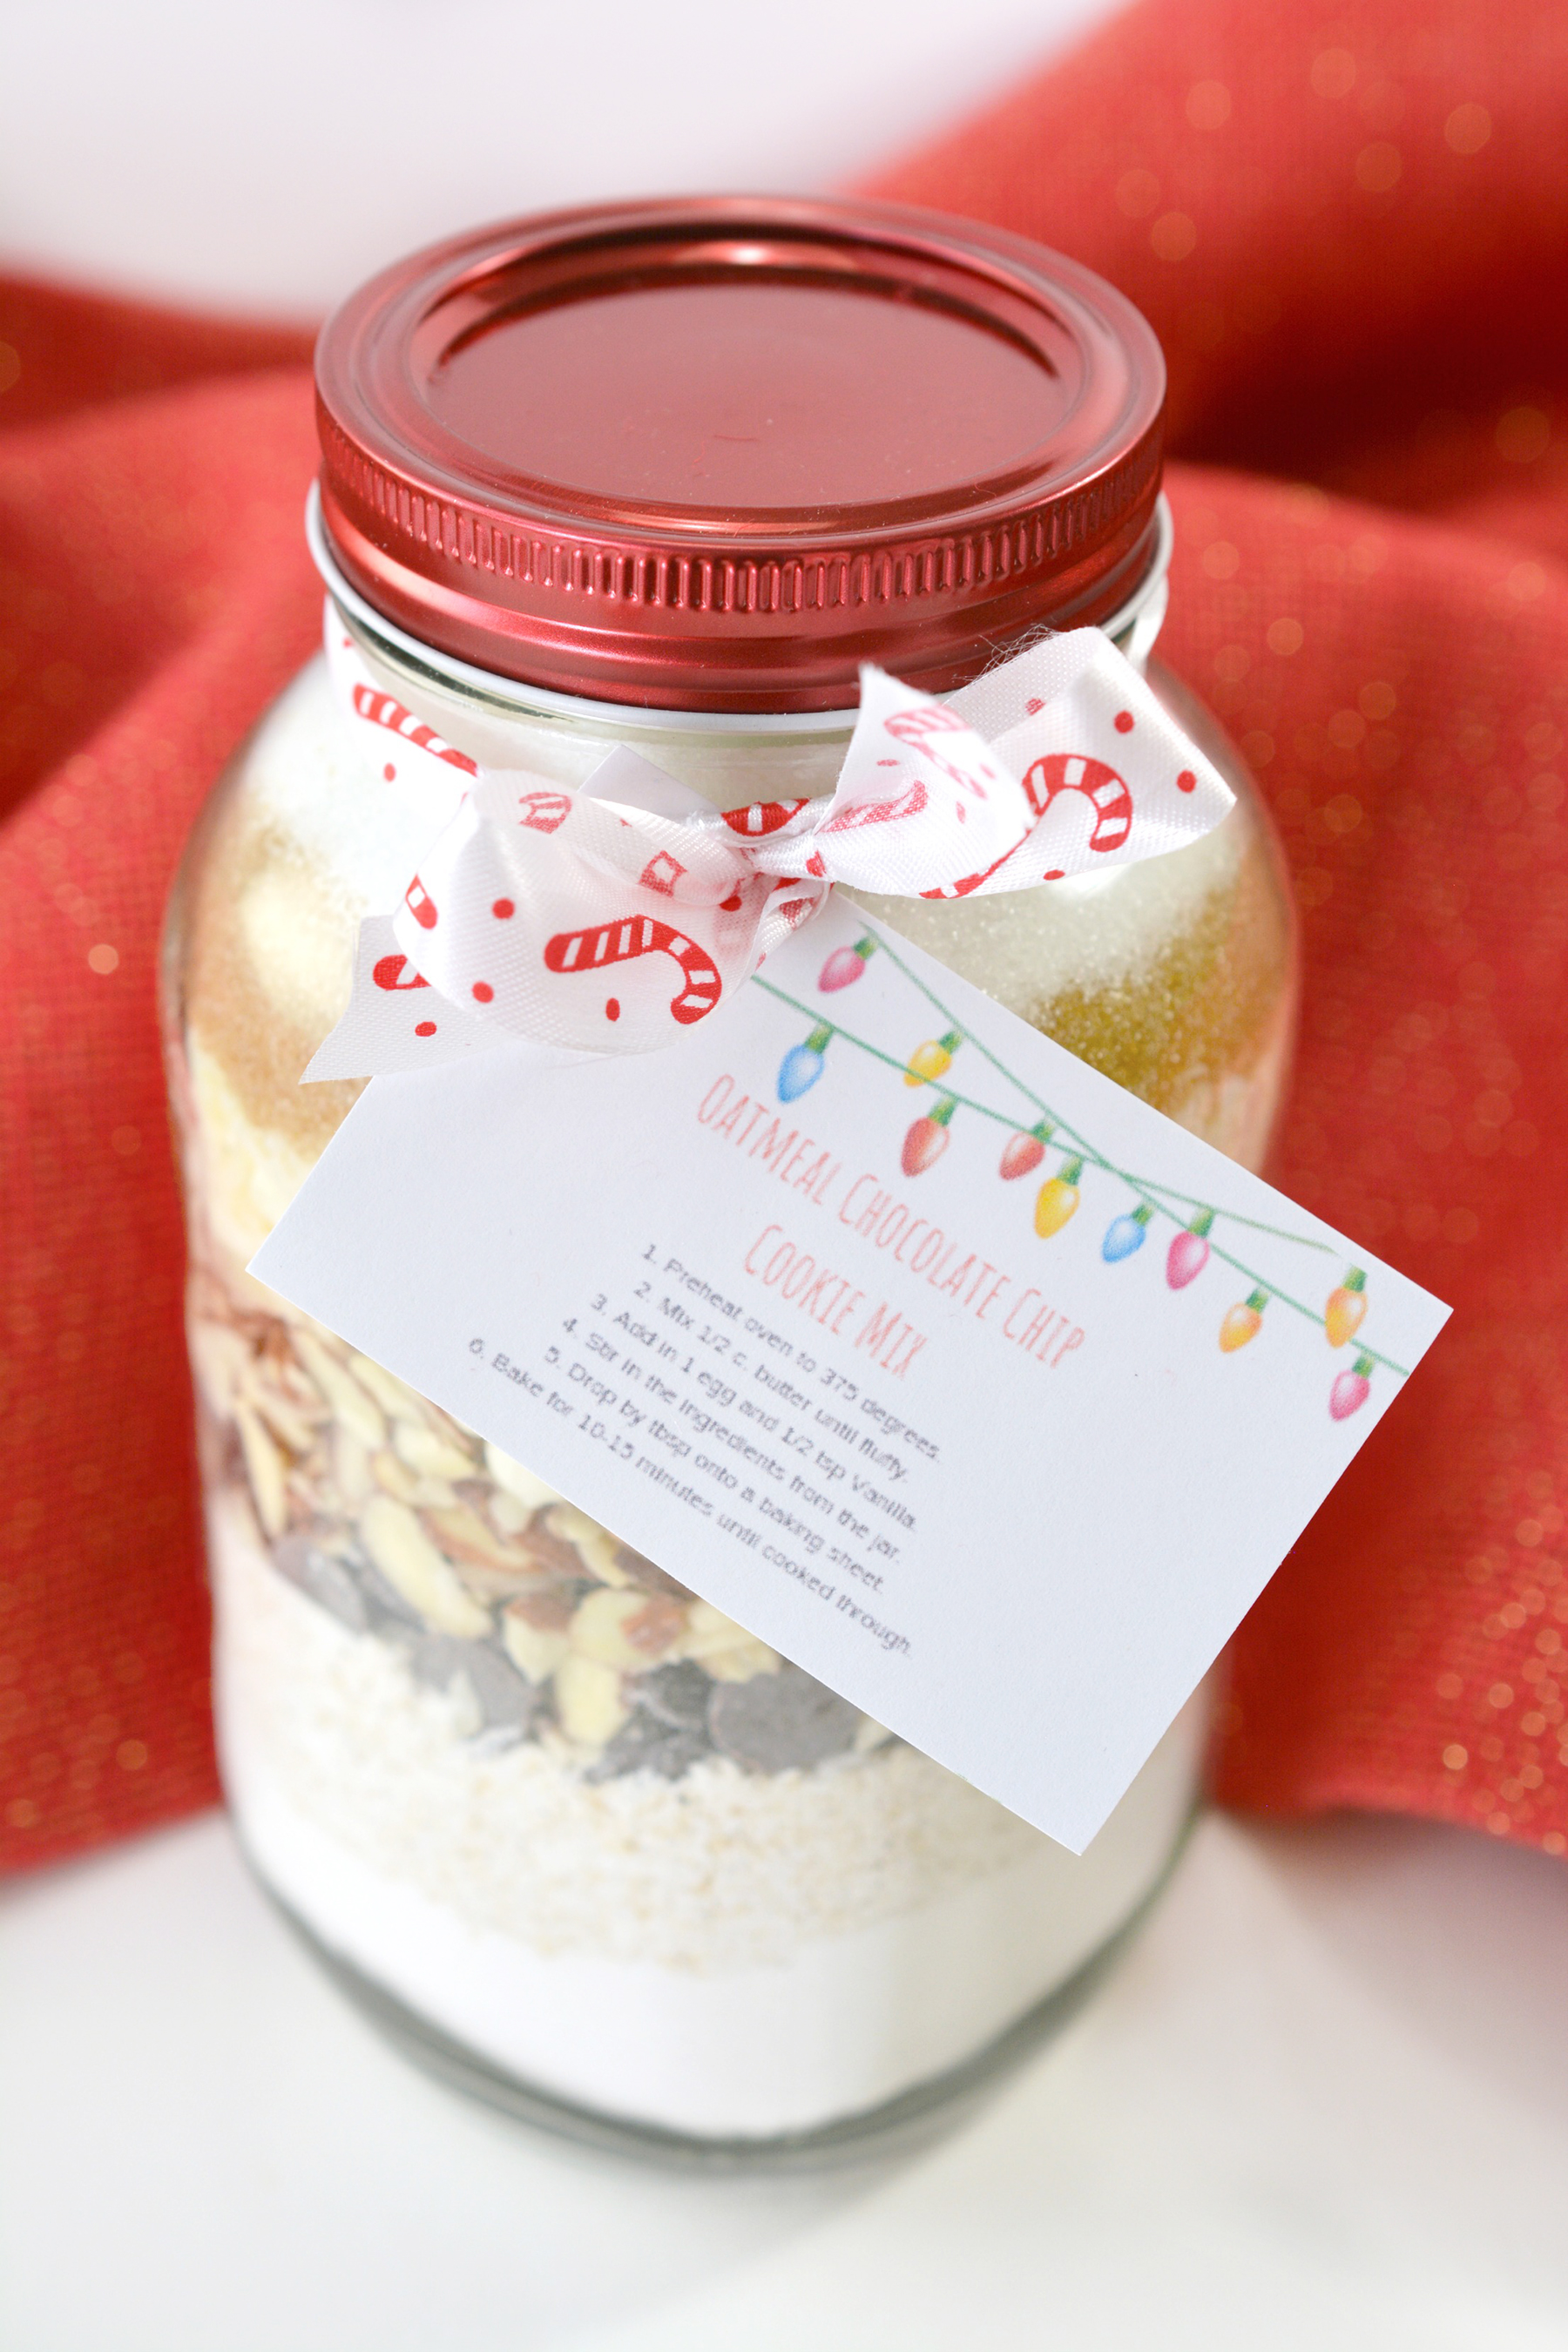 Handmade Gift Idea Oatmeal Chocolate Chip Cookie Mix In A Jar